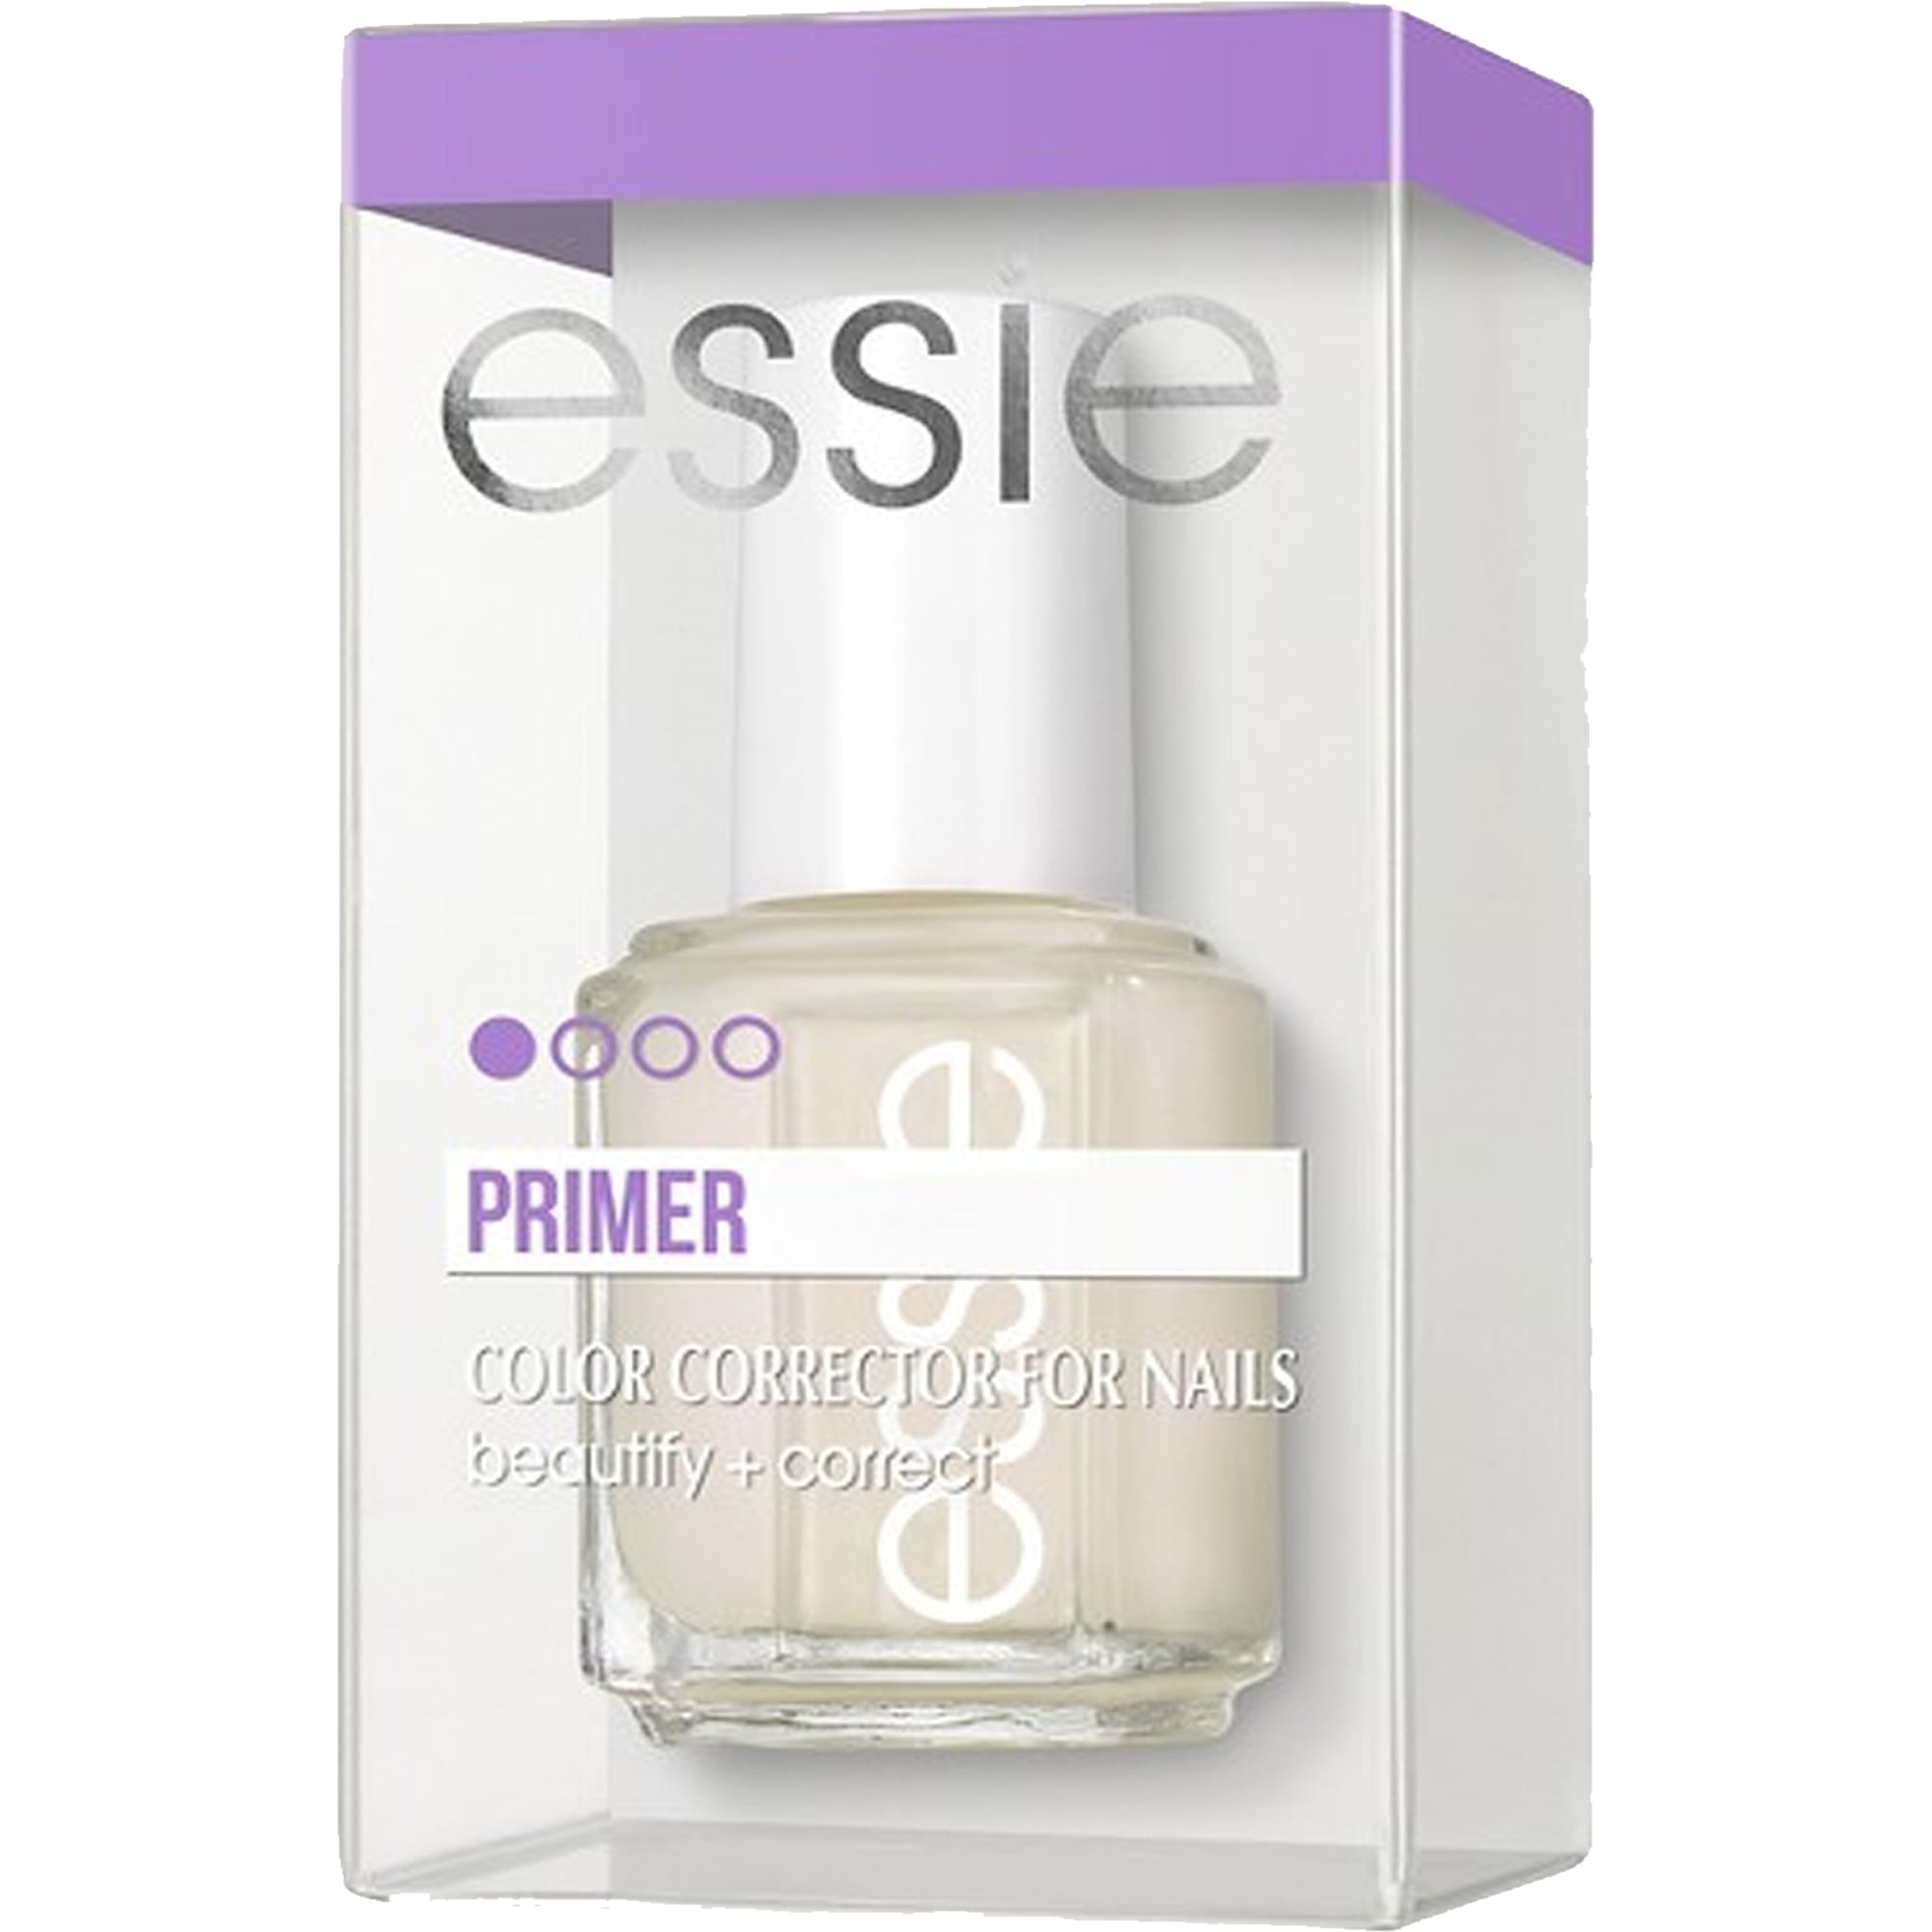 Essie Nail Polish - Color Corrector For Nails - Primer 13.5ml